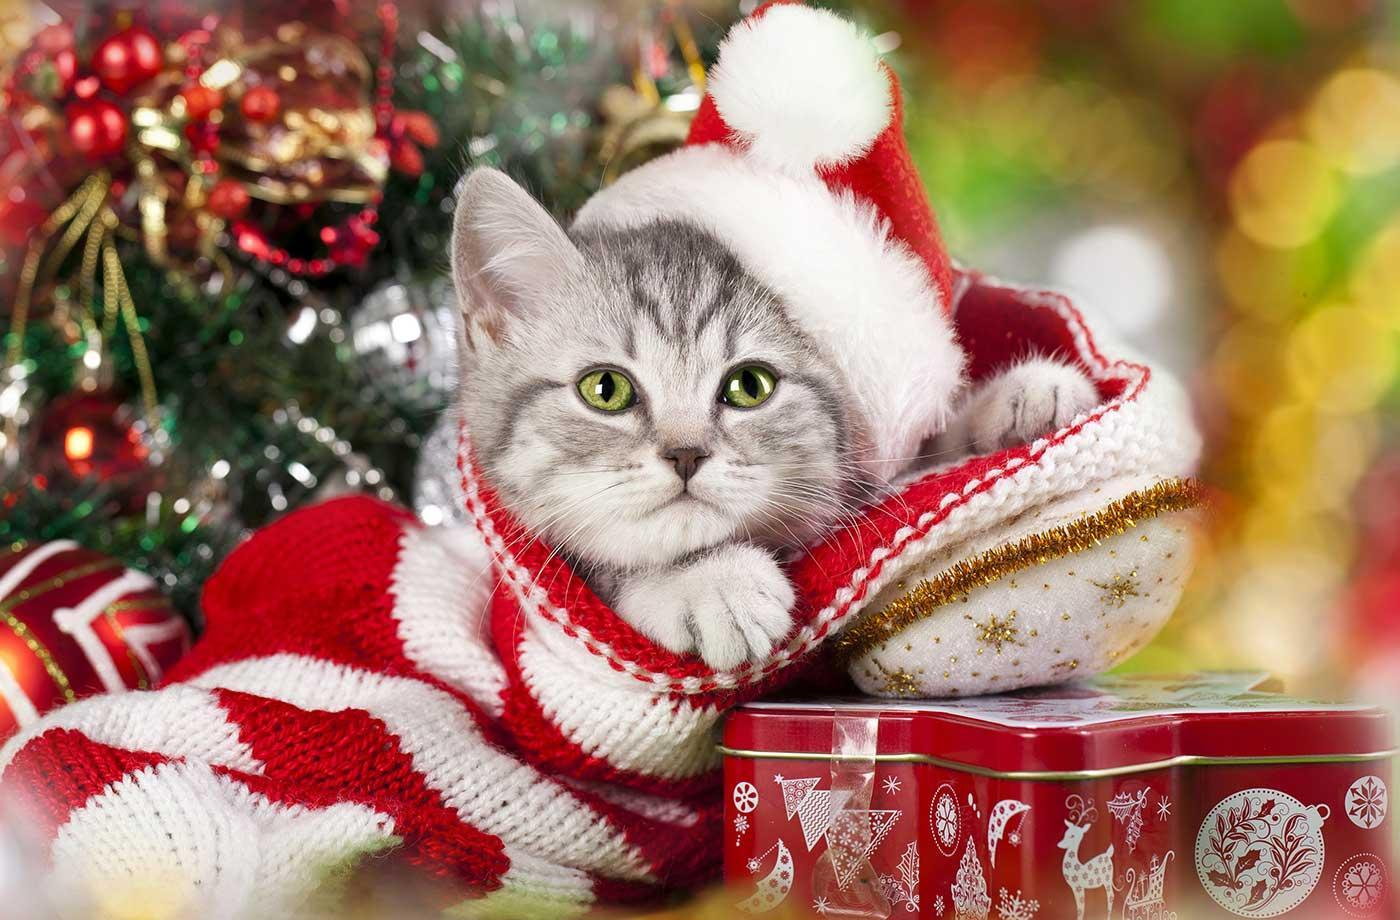 Christmas Cat Live Wallpaper For Android Apk Download